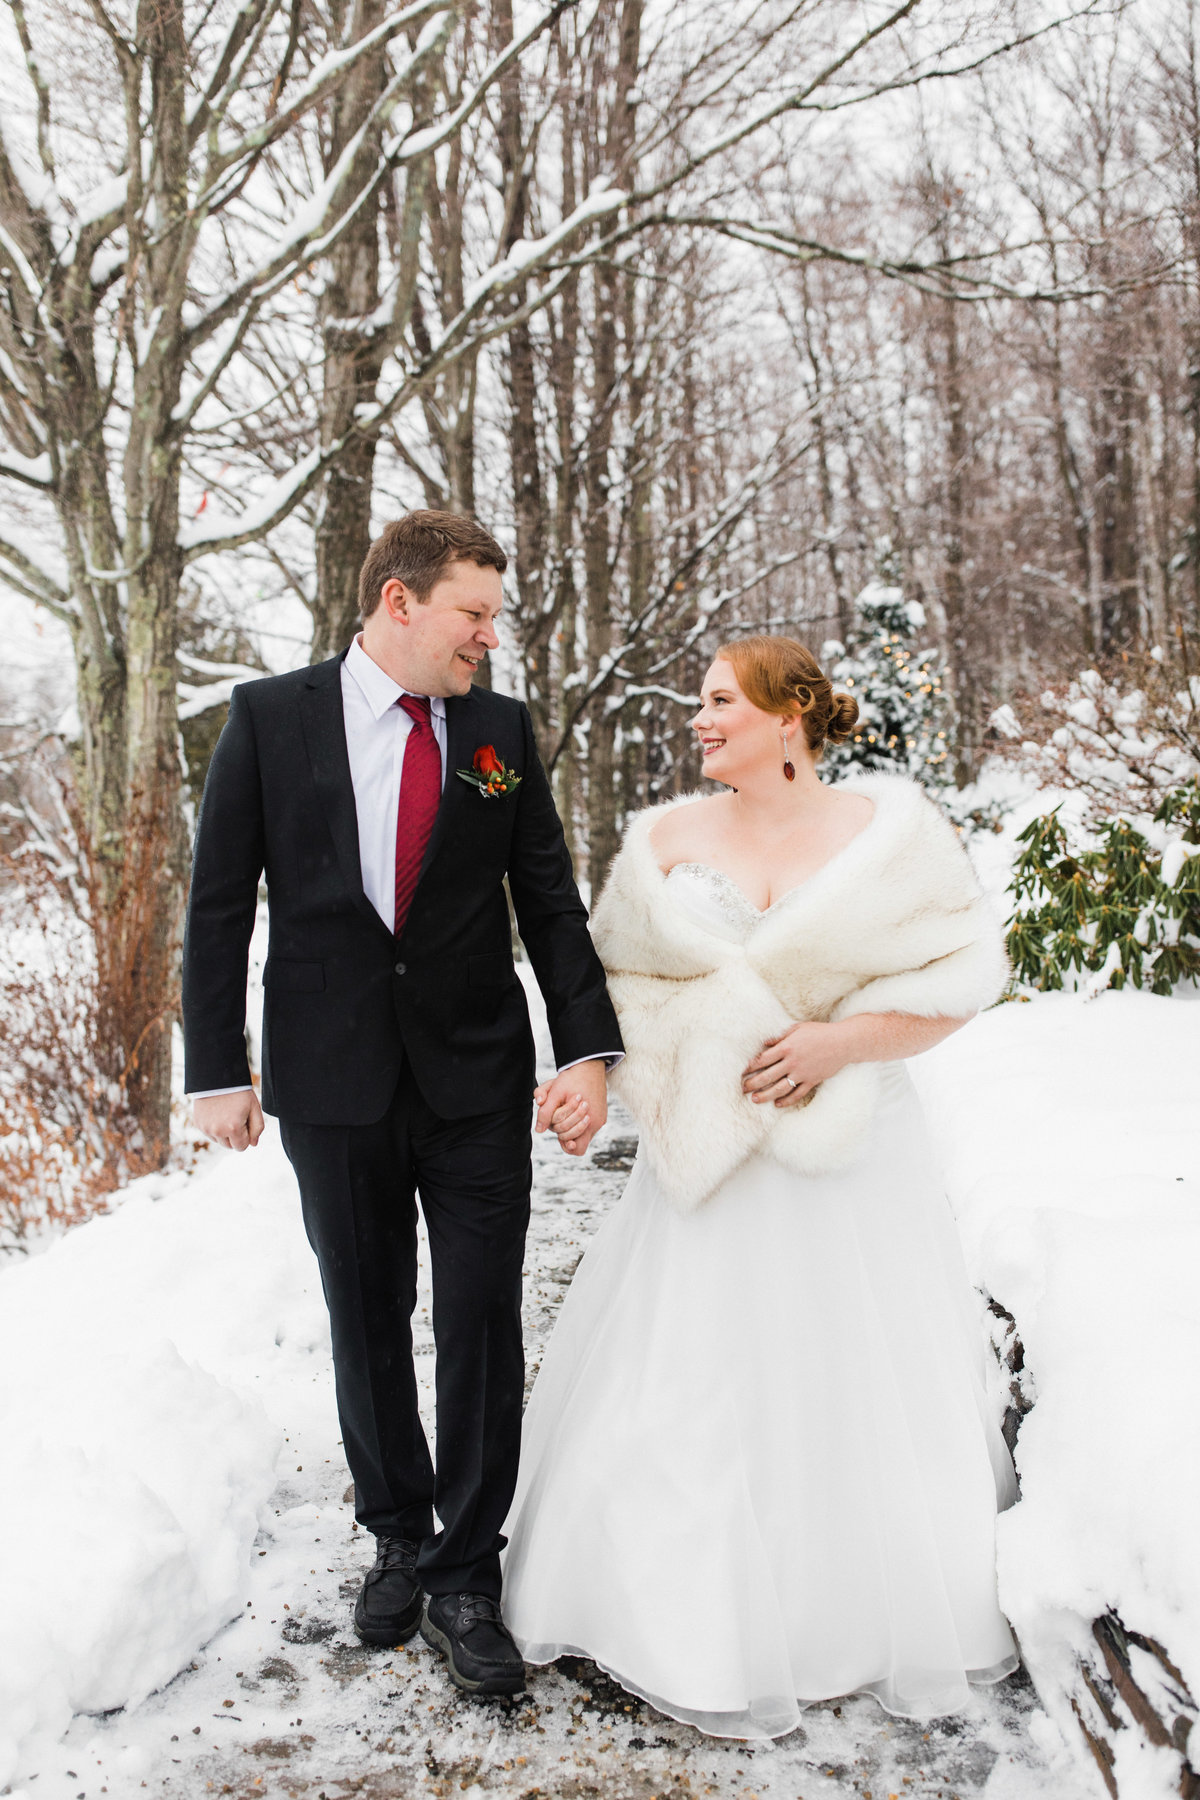 Nh  new england maine boston winter bride wedding Esra Y Photography-1